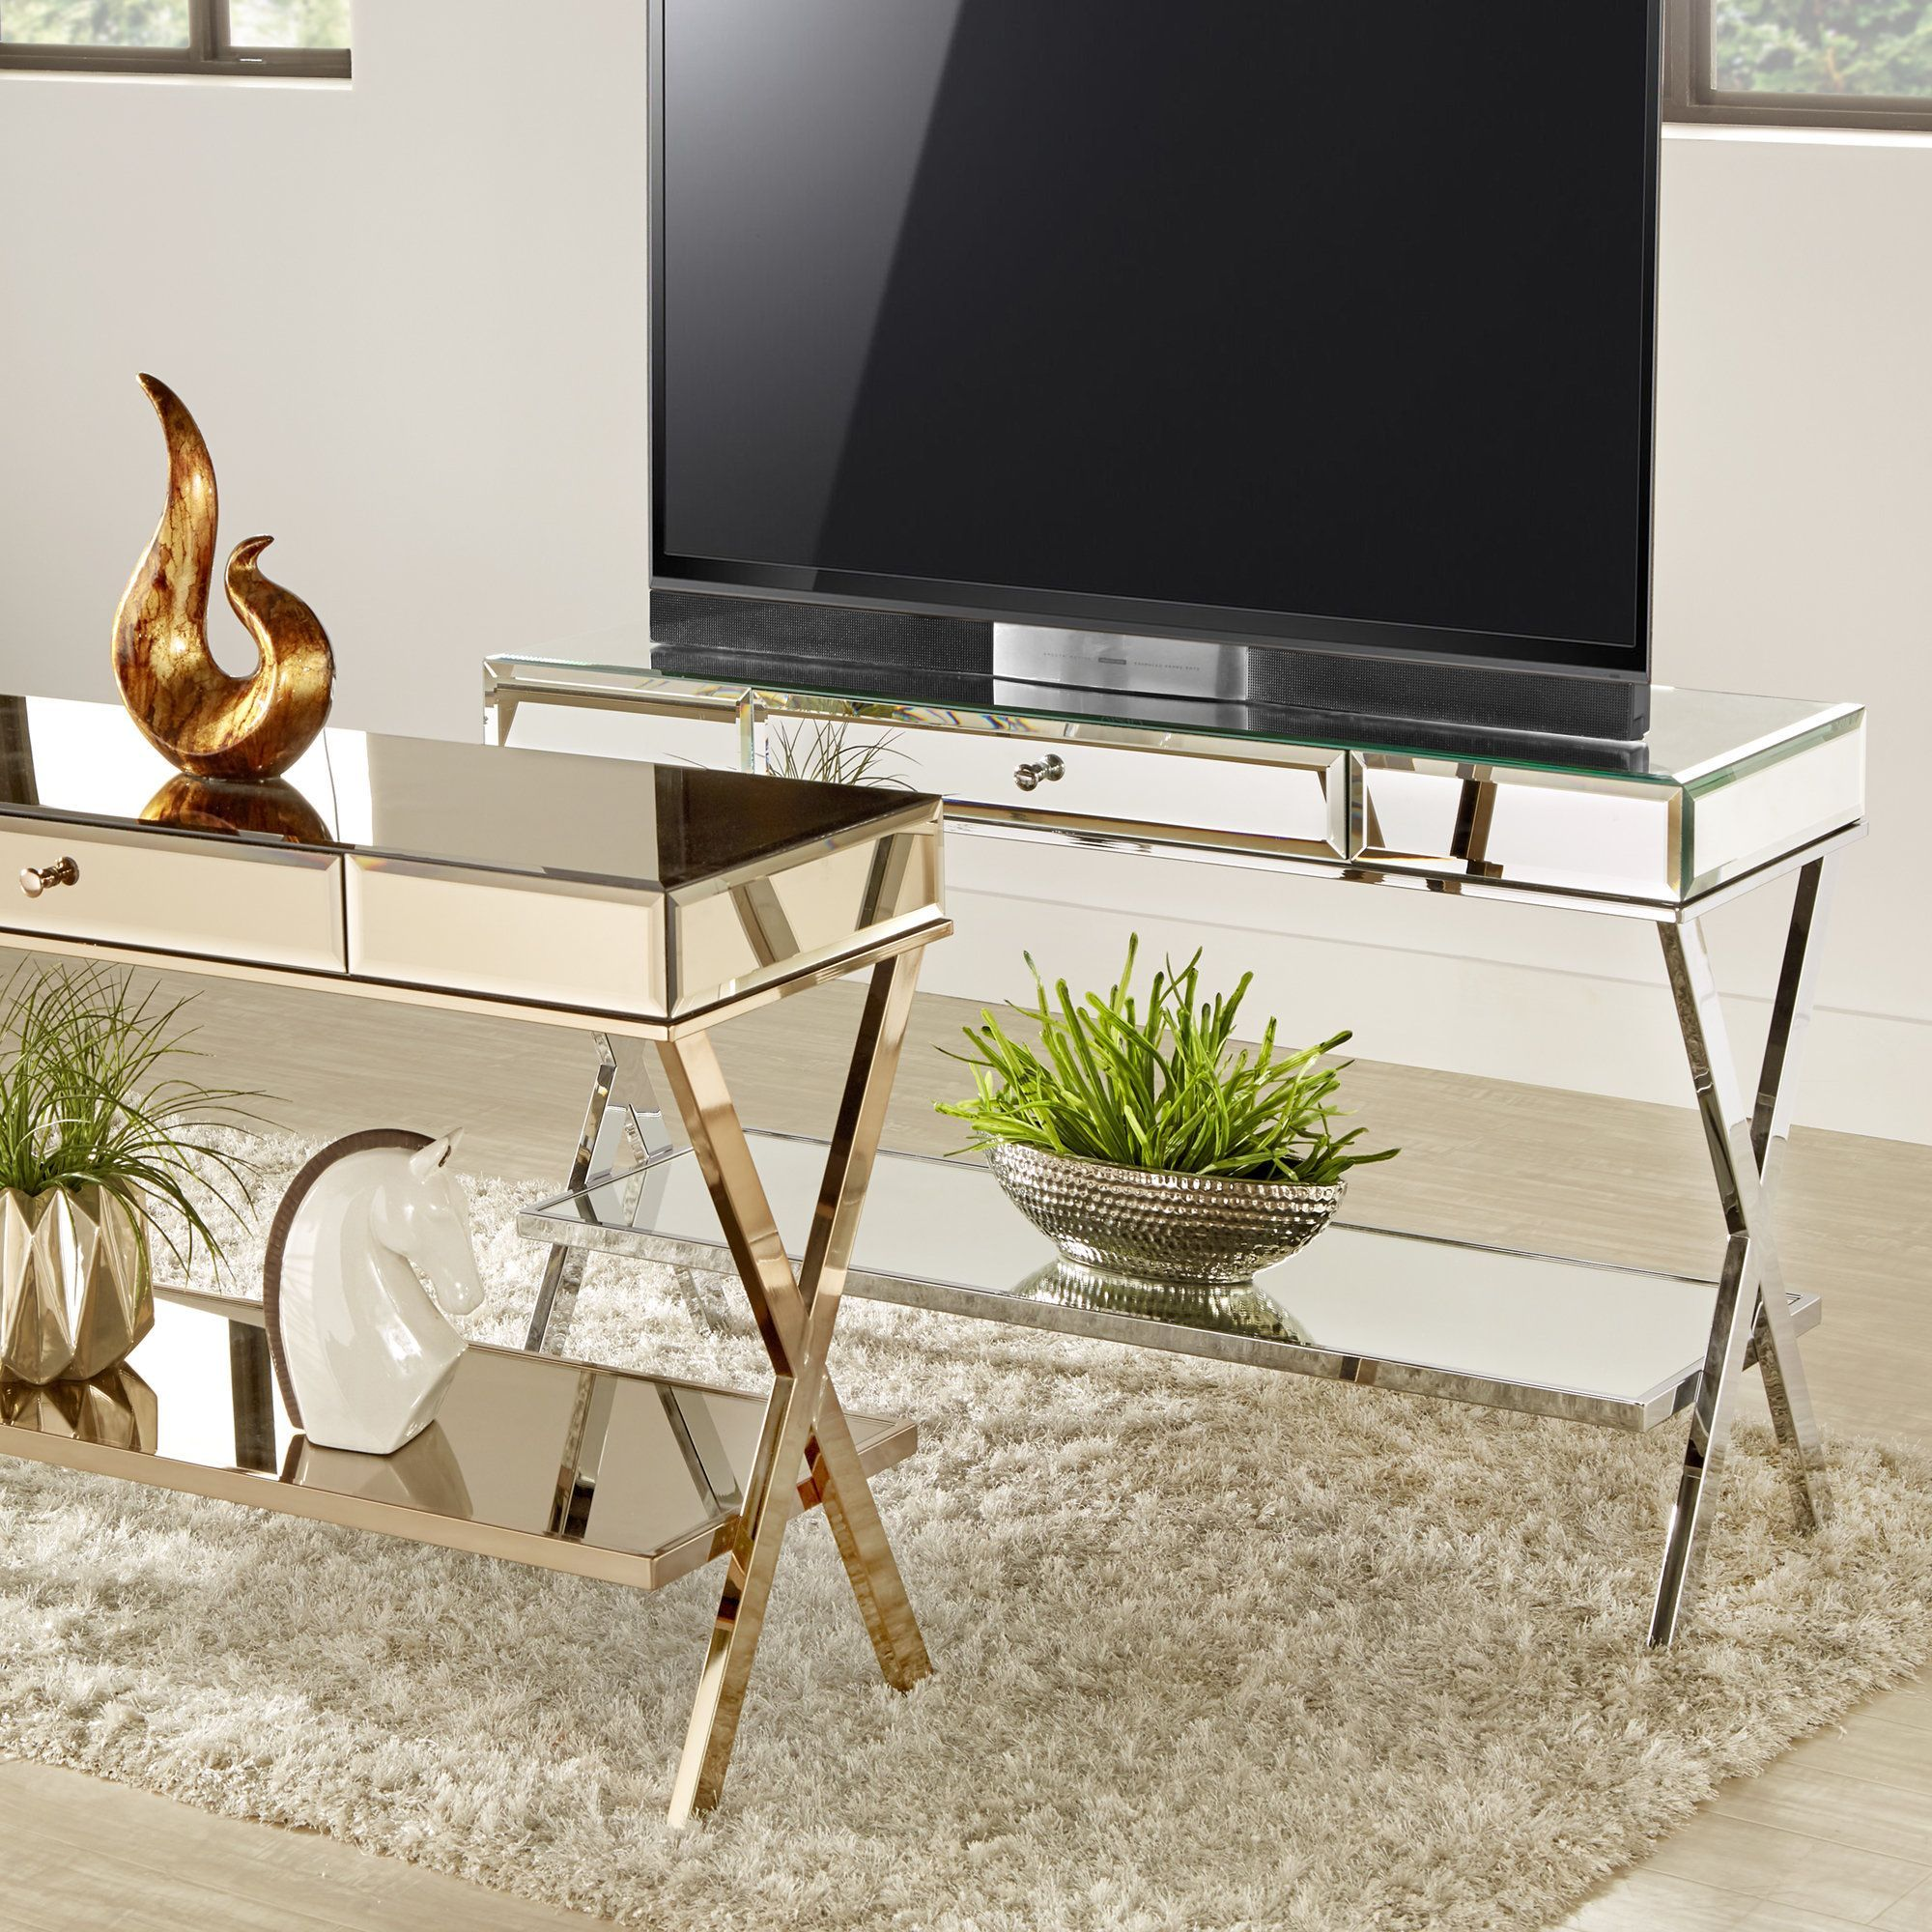 Add glamour and functionality to your living room with this mirrored TV  stand from Inspire Q